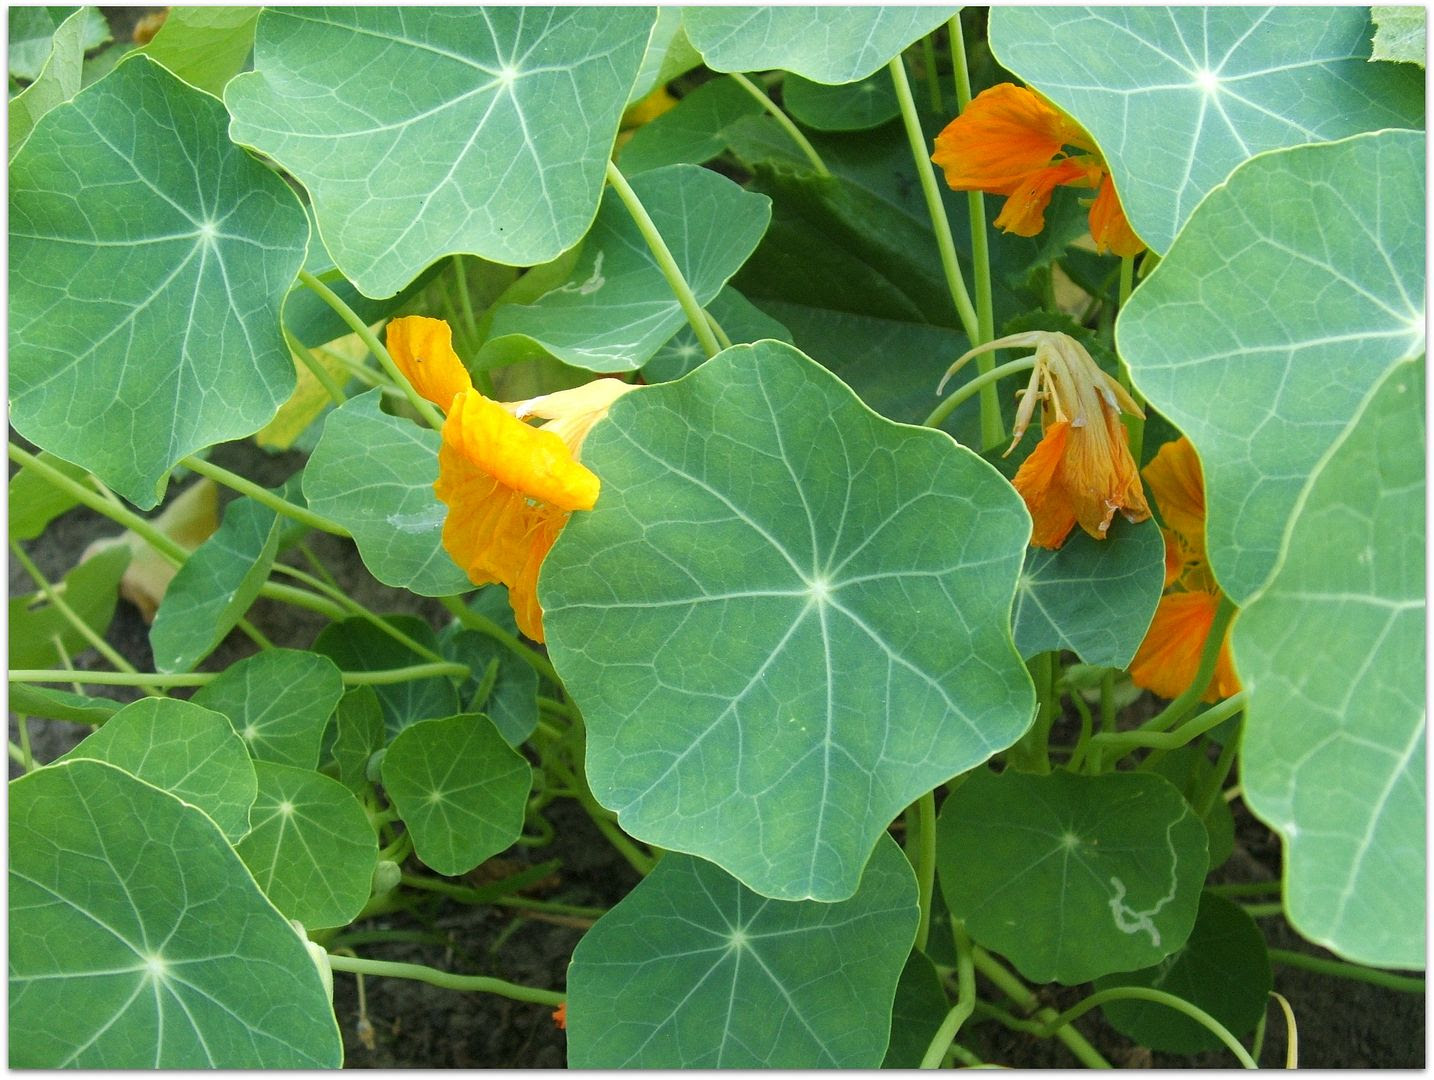 Nasturtiums by Angie Ouellette-Tower for godsgrowinggarden.com photo 019_zpsc47275e6.jpg